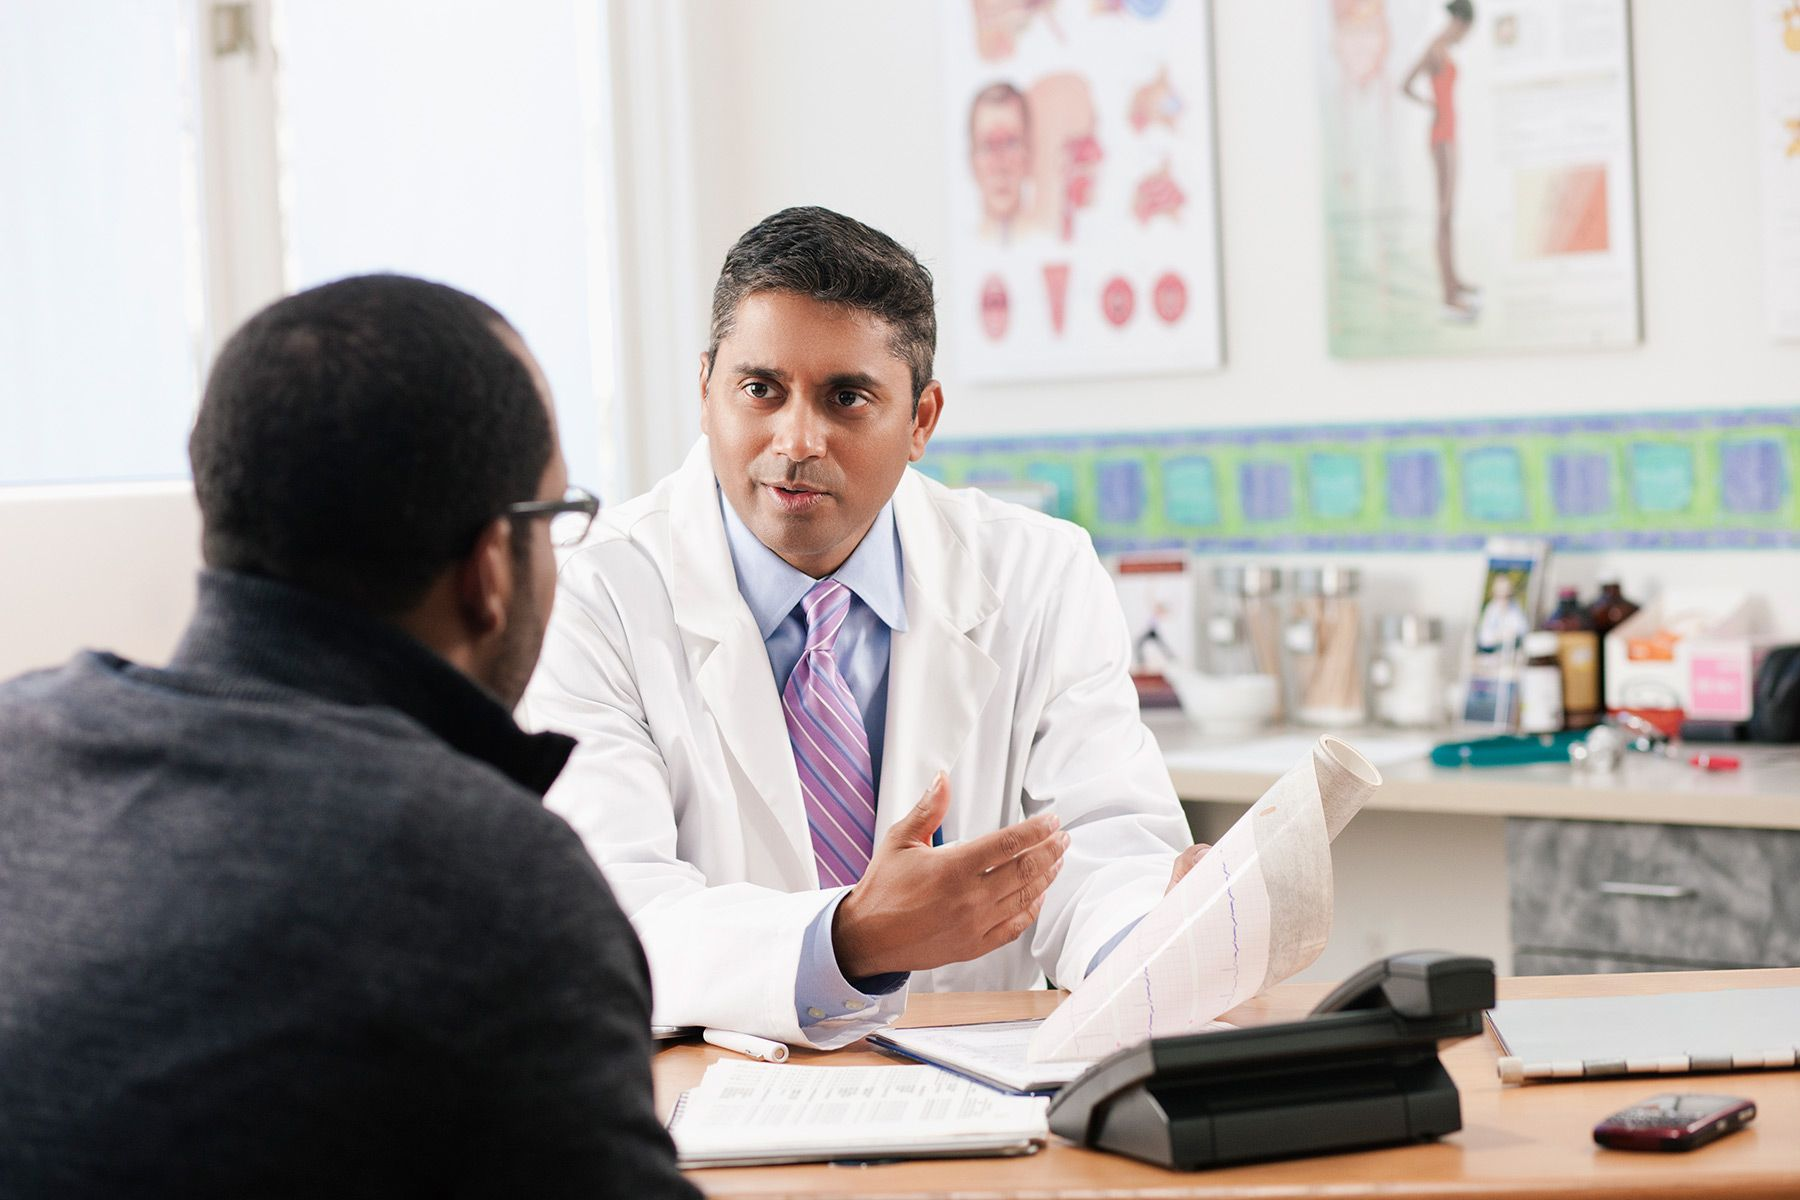 Why Are Men Less Likely to See a Doctor?  - web md